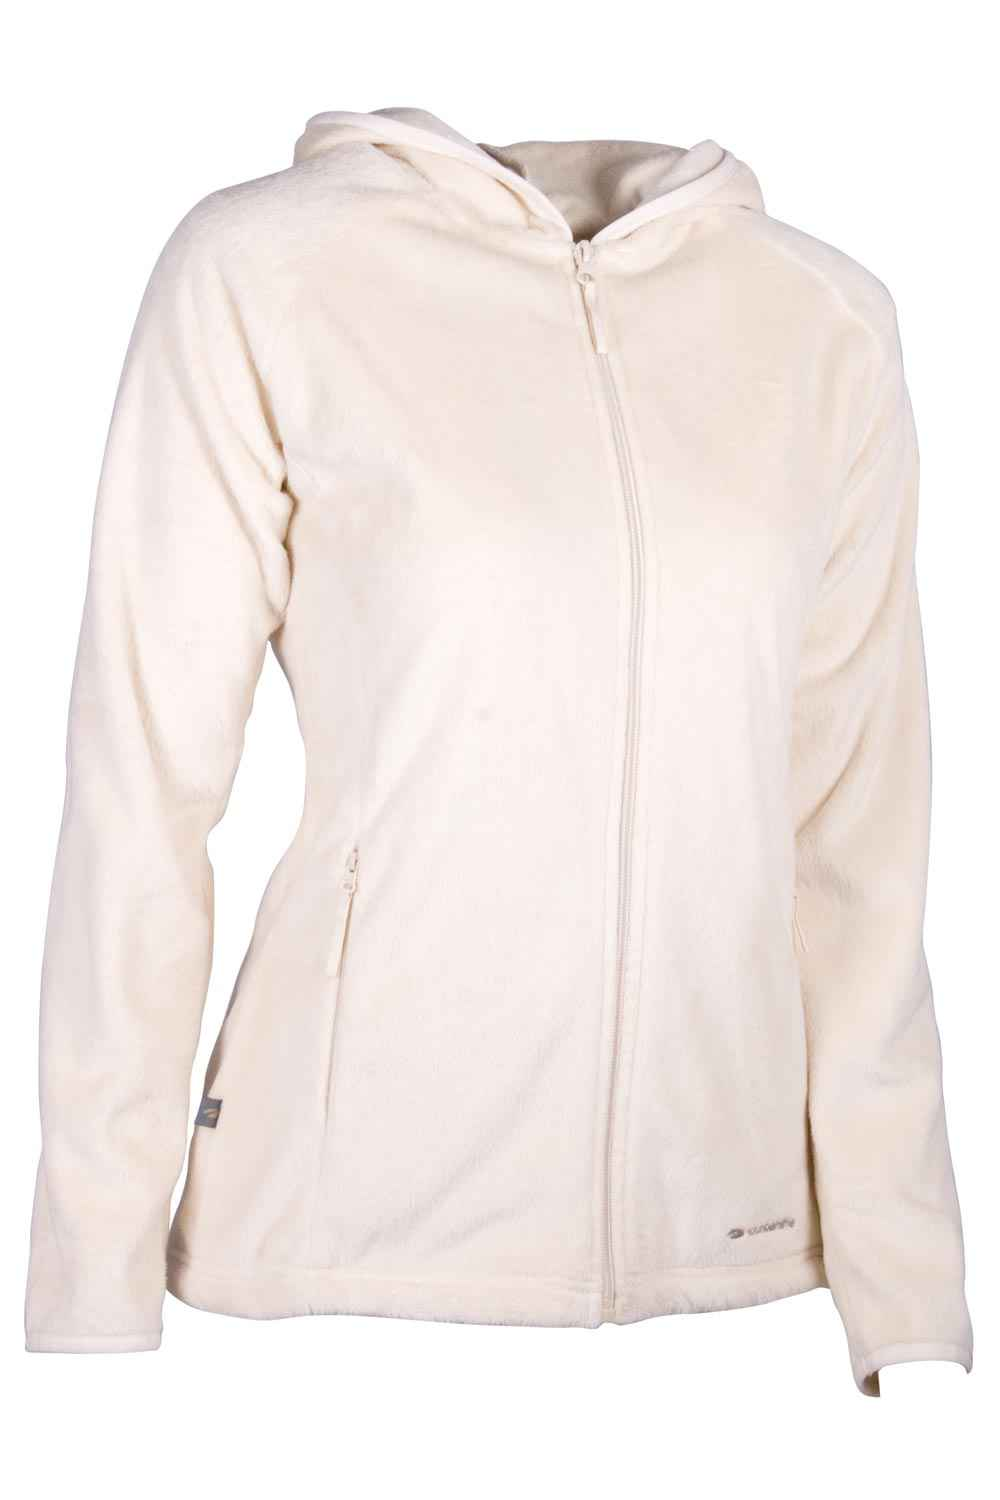 CREAM-GRIFFIN-WOMENS-FLEECE How Women Choose Fleece Jackets